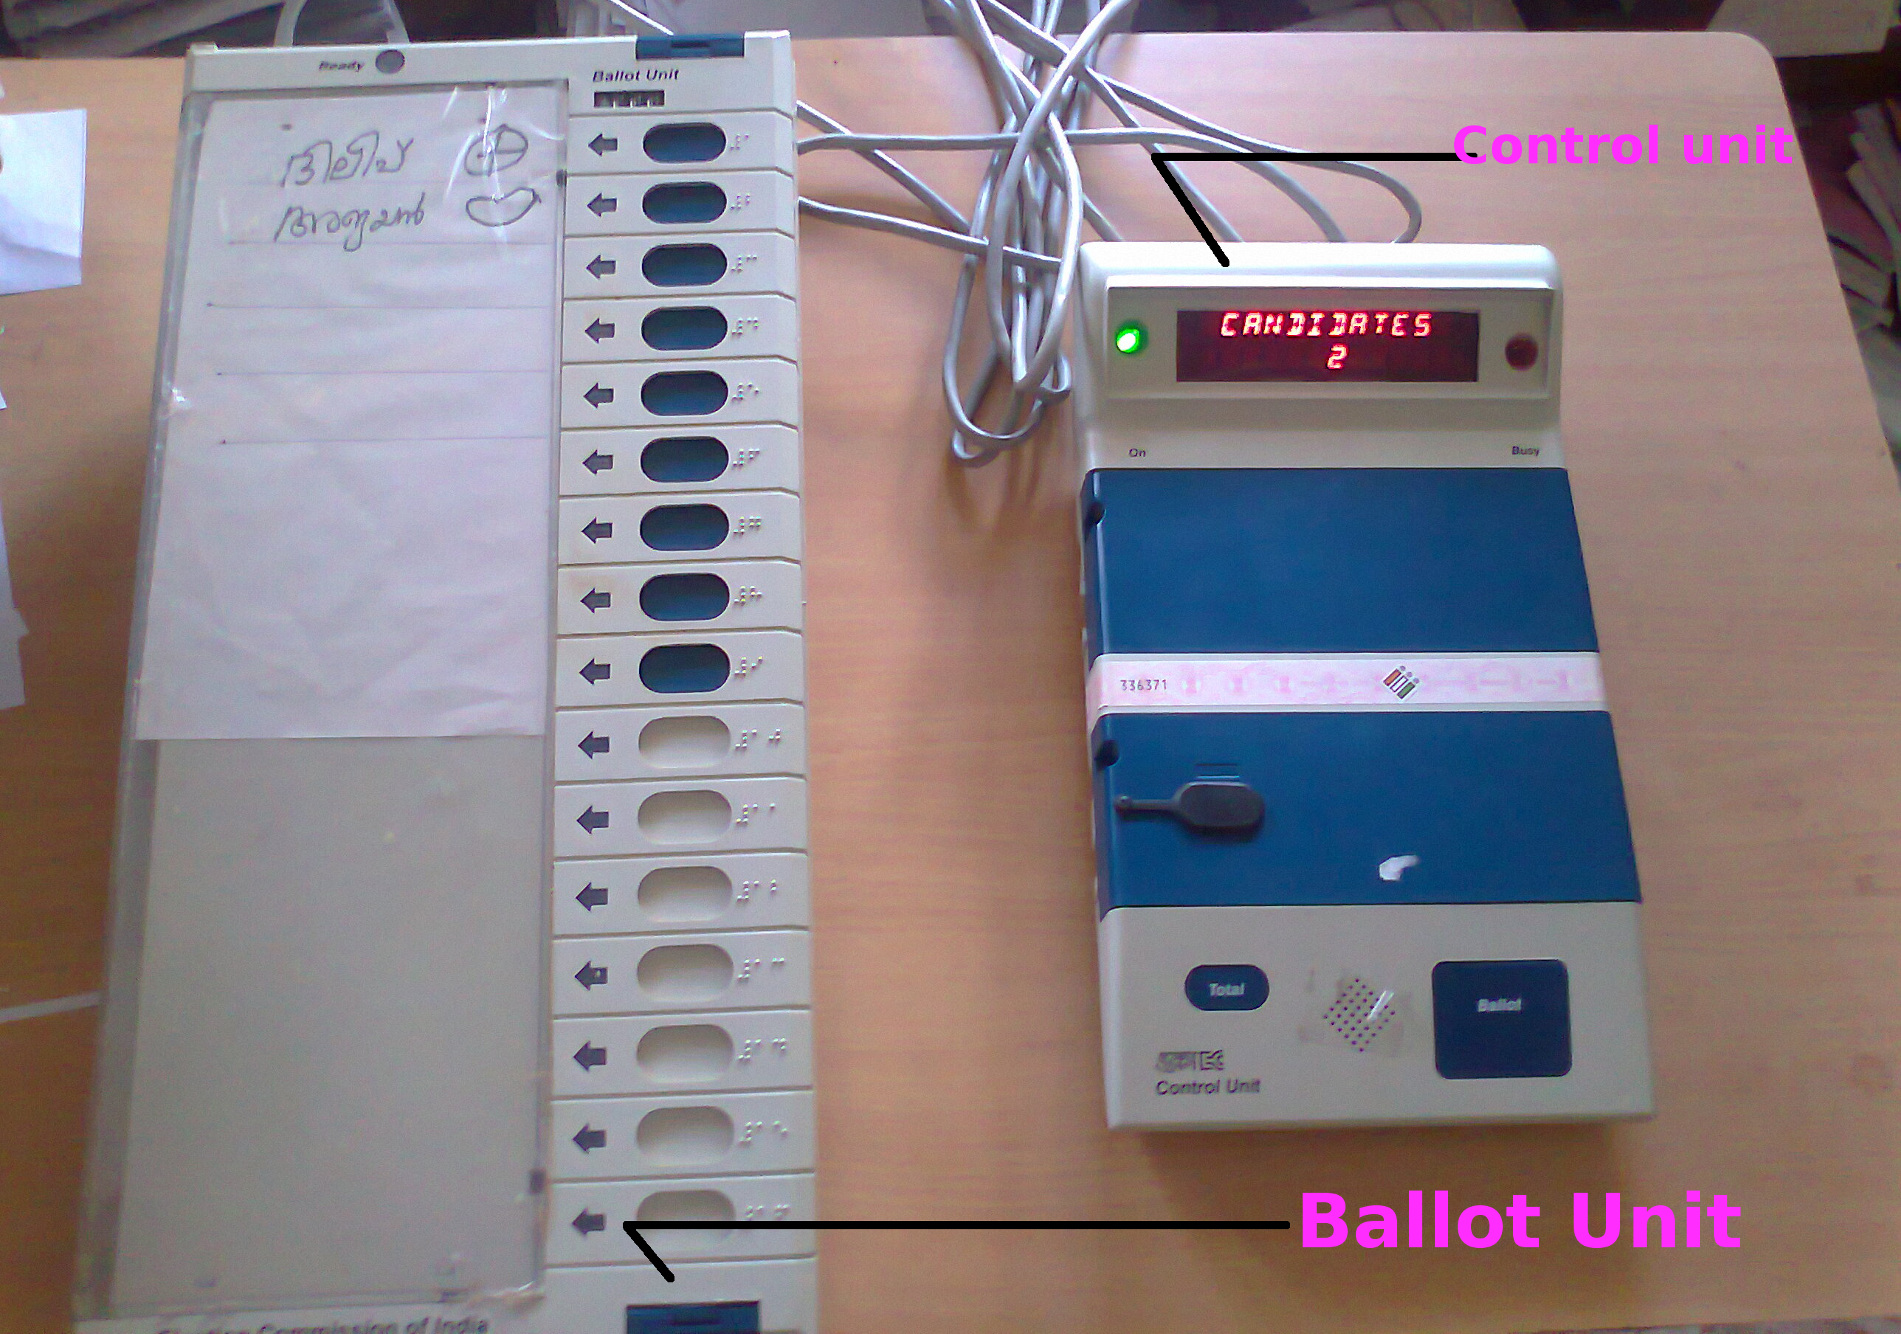 An EVM consists of a Control and Balloting Unit, connected by a cable.